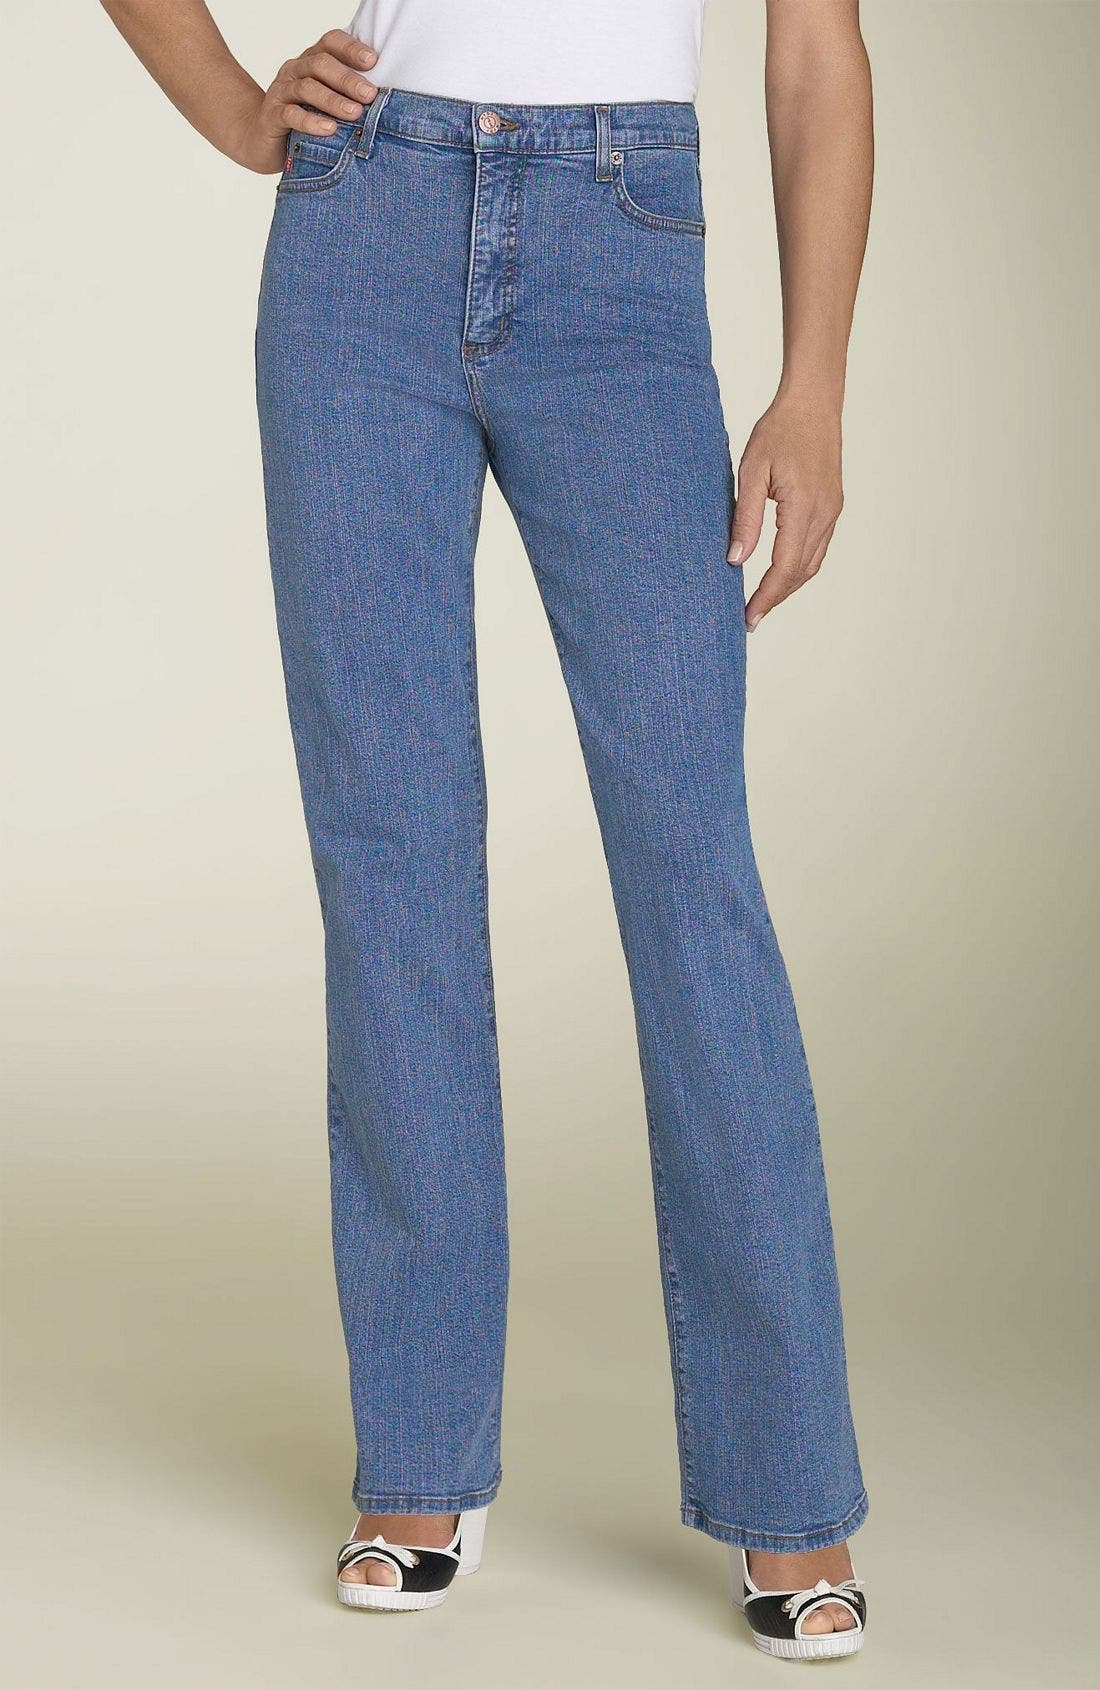 Alternate Image 1 Selected - Not Your Daughter's Jeans Tummy Tuck Stretch Jeans (Petite)